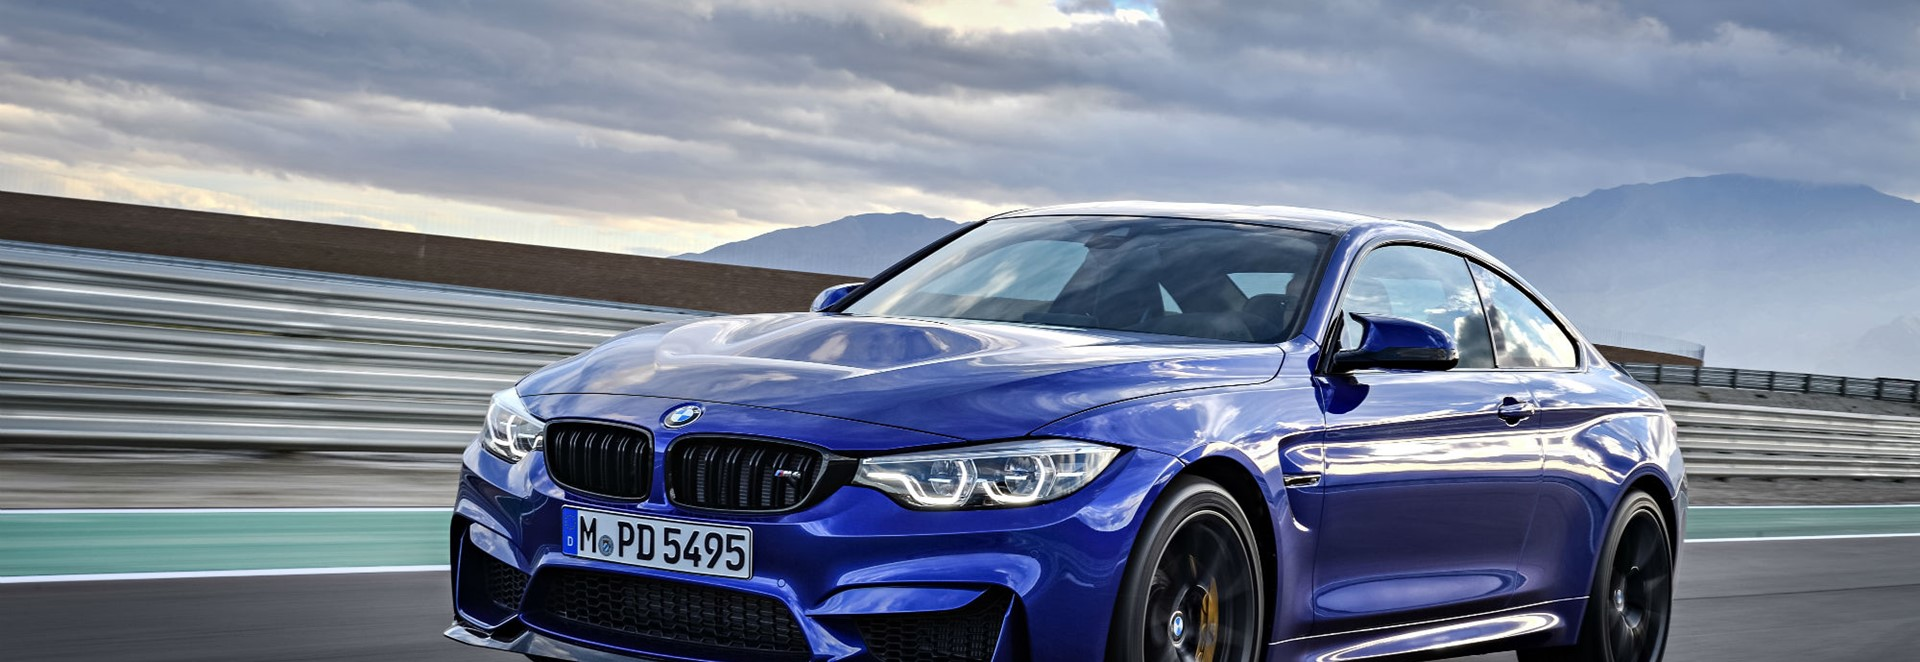 Limited edition 2017 BMW M4 CS with 454bhp unveiled in Shanghai